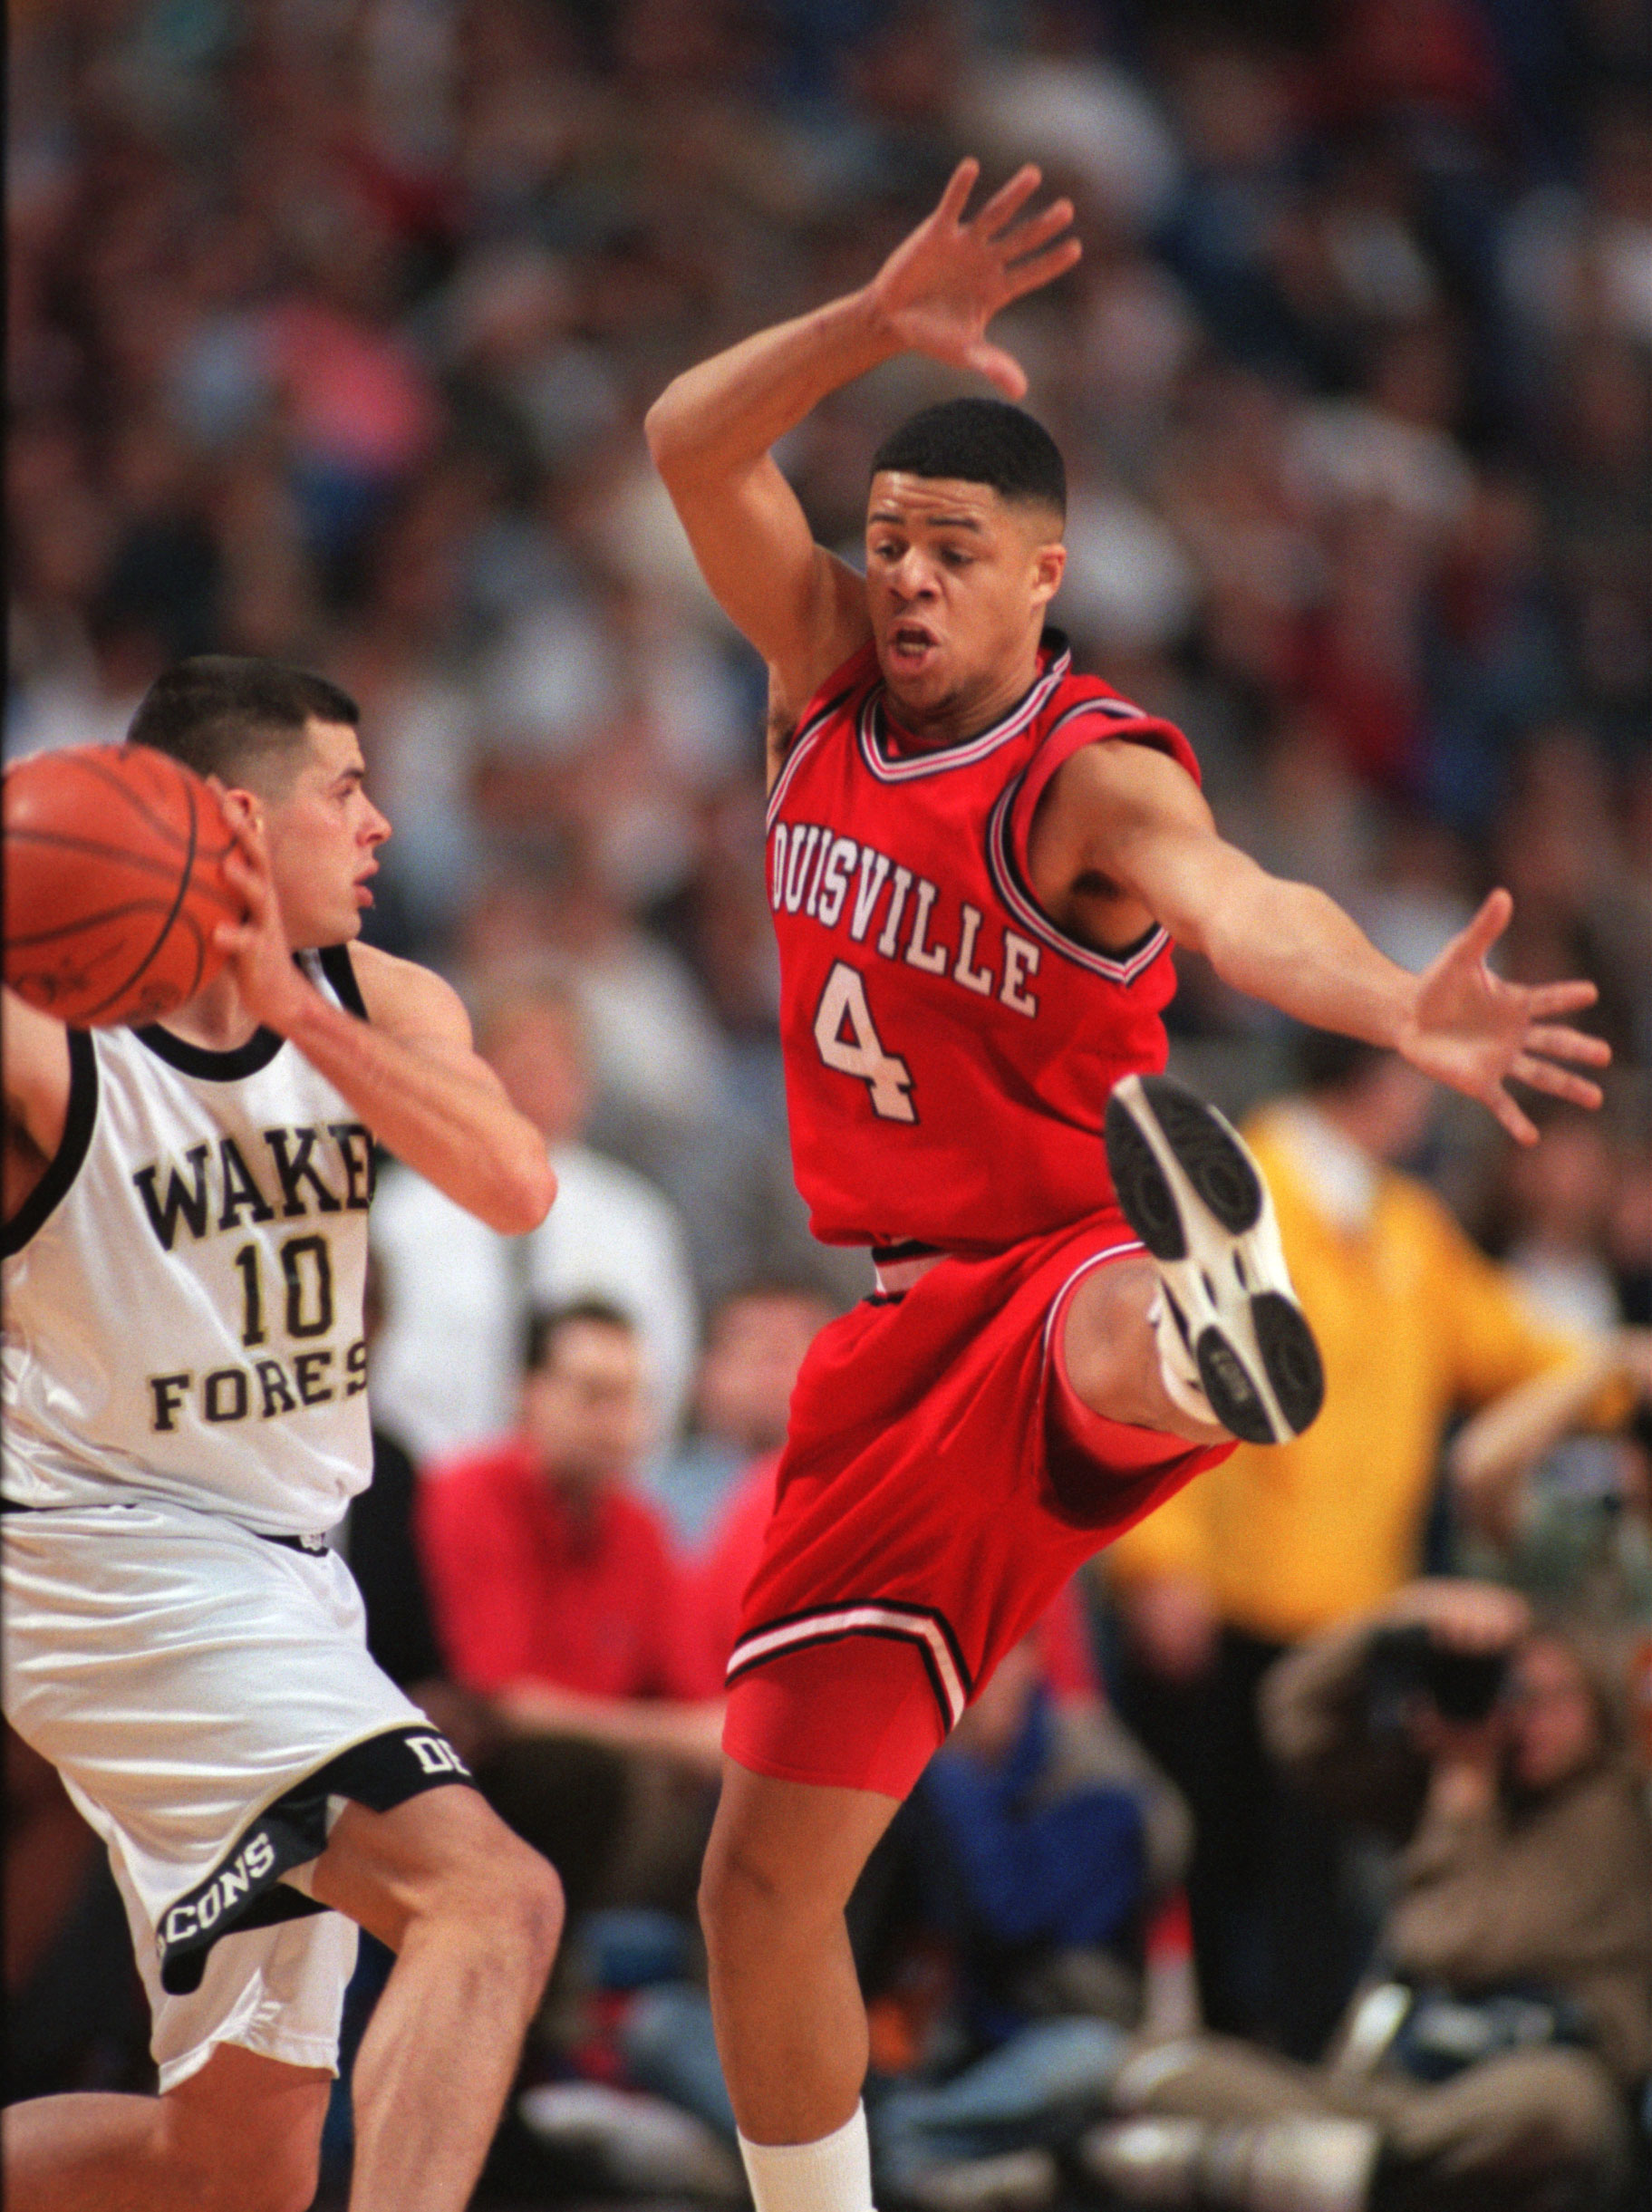 Louisville's Tick Rogers defends against Wake Forest's Rusty LaRue as he was looking for someone to pass to in the first half of their game Thursday night at the Metrodome